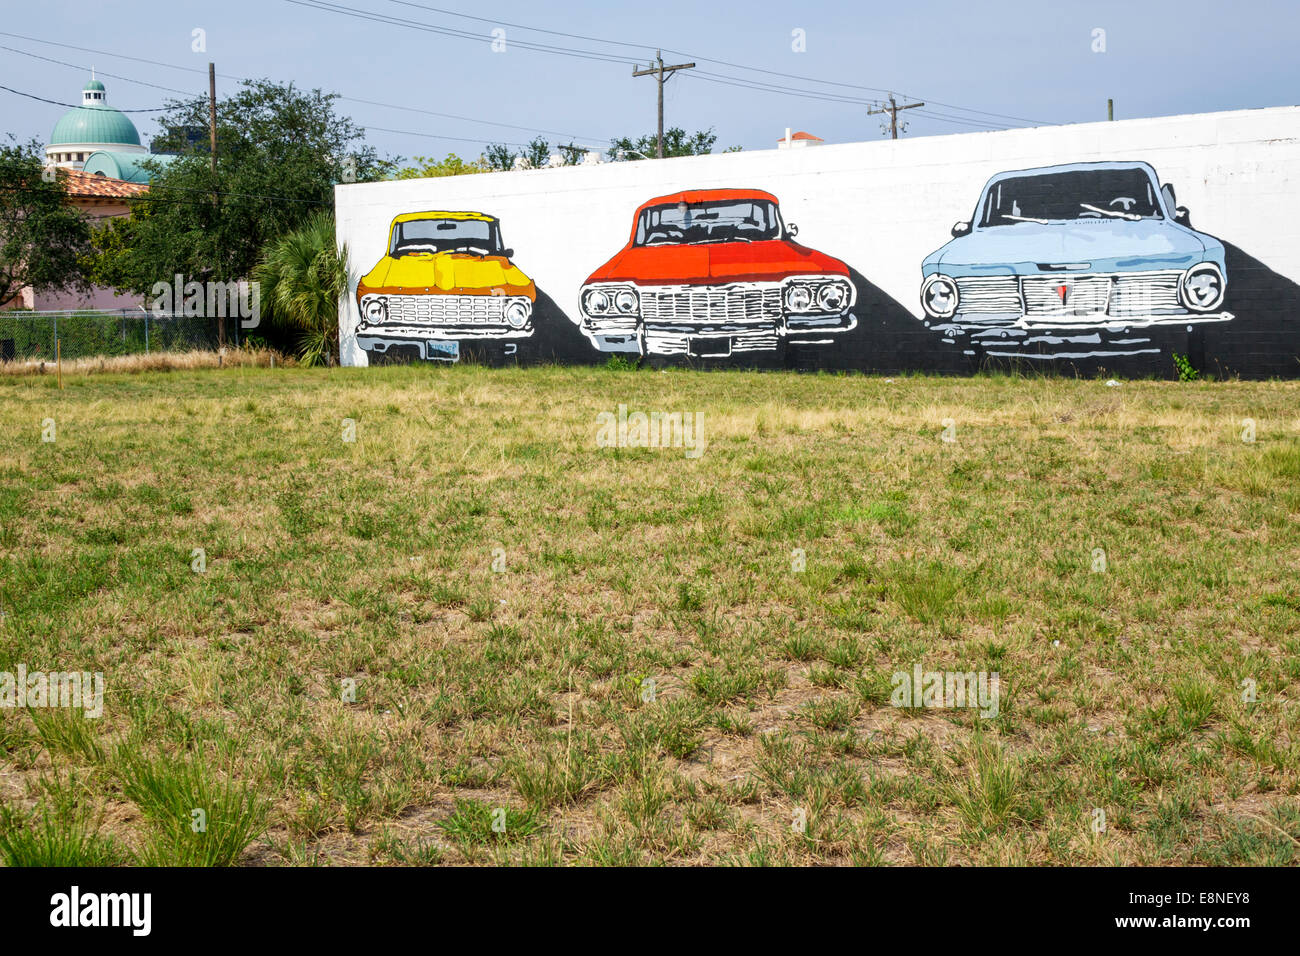 Automotive wall murals image collections home wall decoration ideas west palm beach florida wall mural classic cars art stock photo west palm beach florida wall amipublicfo Image collections